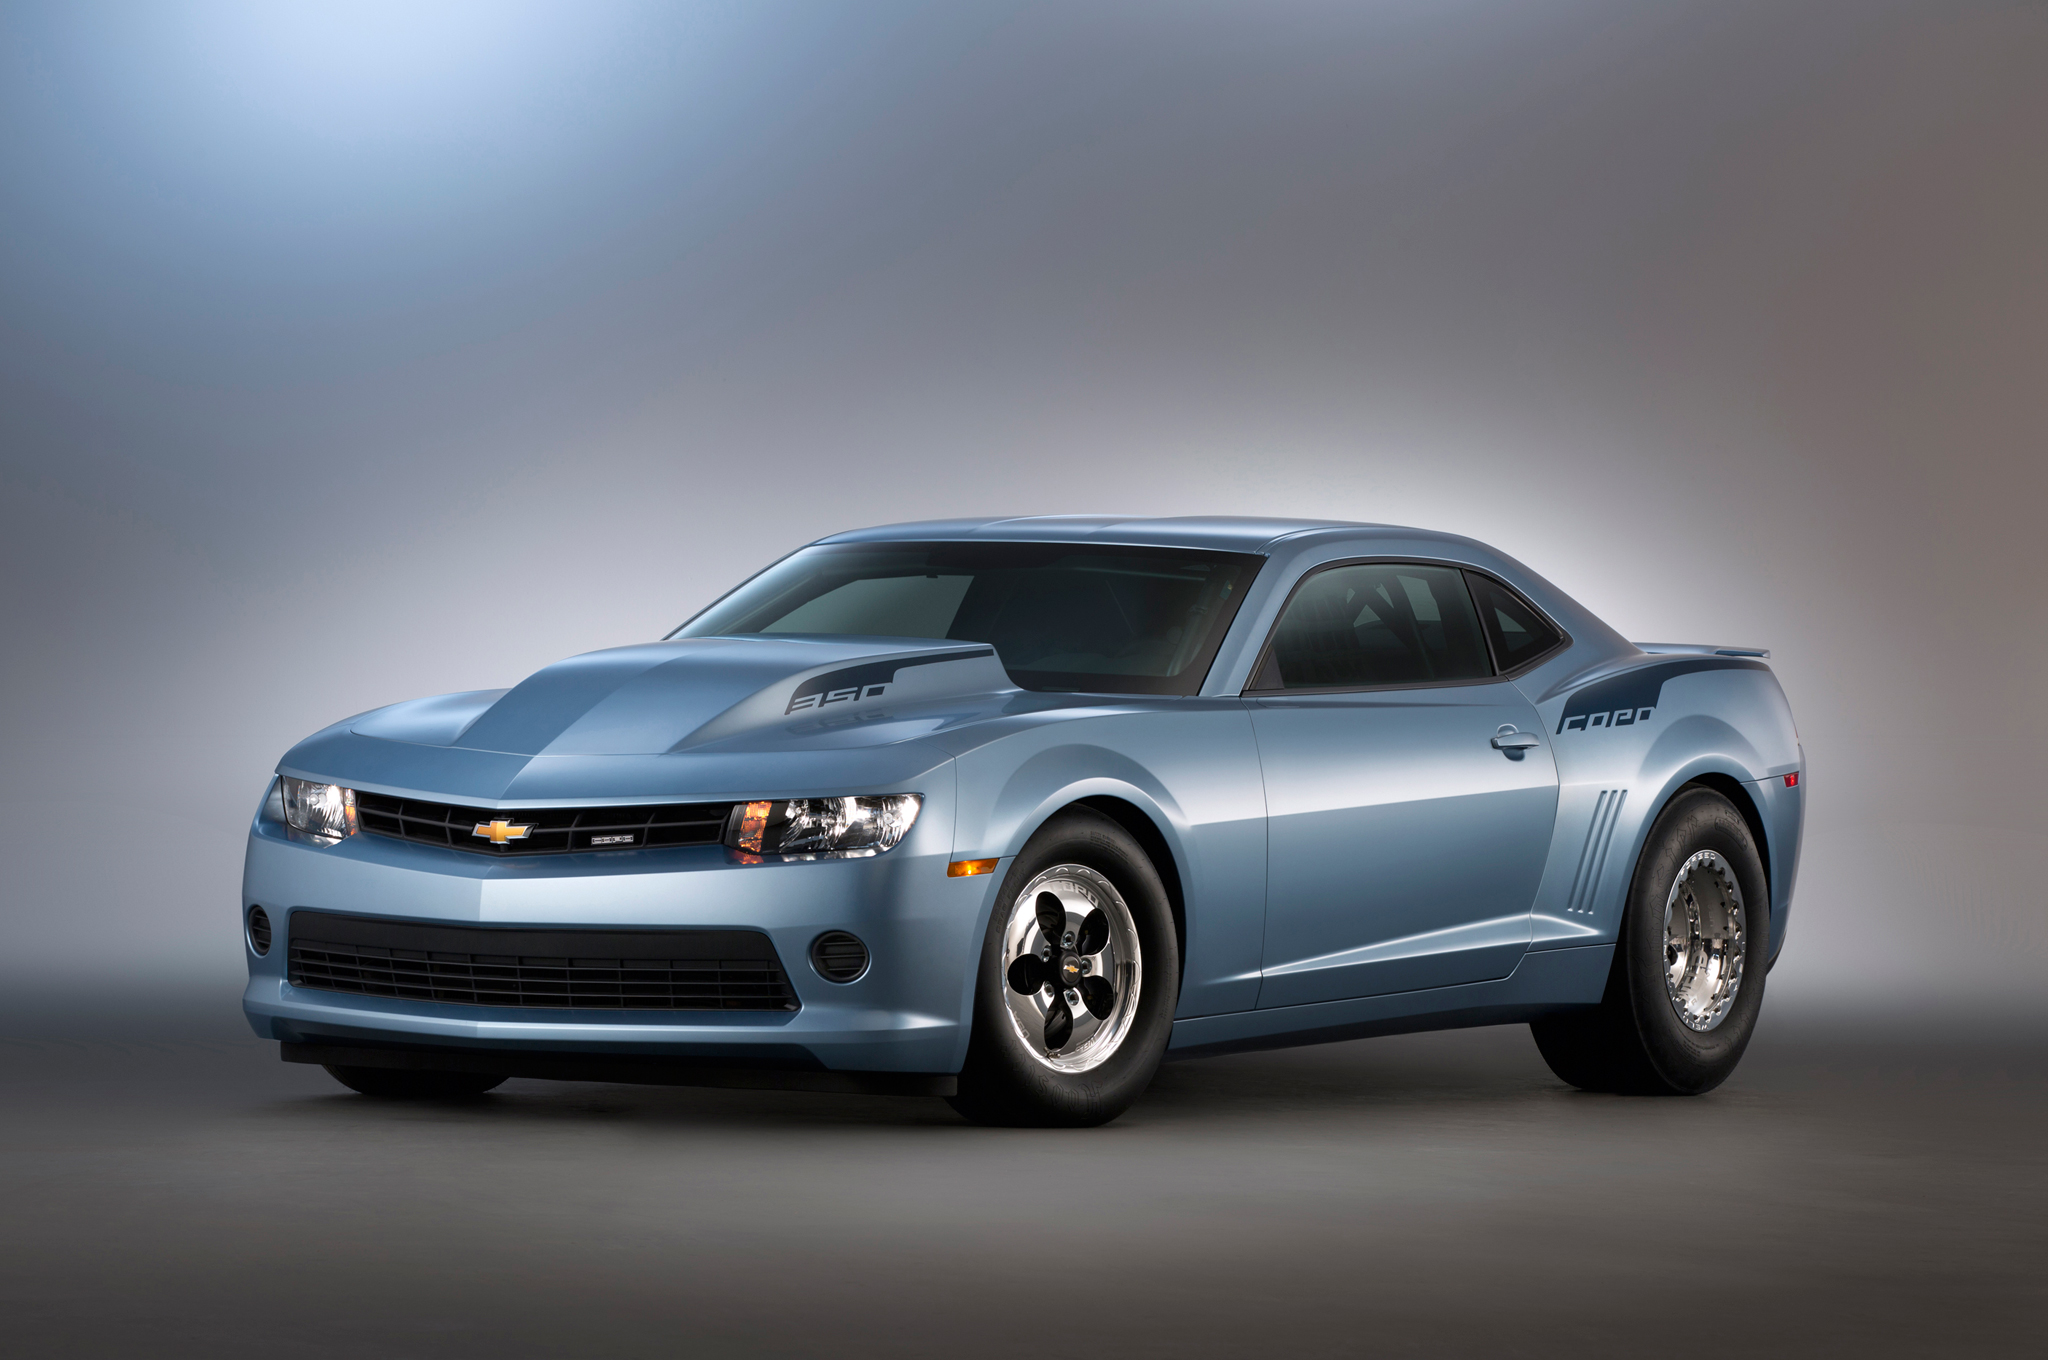 2014 COPO Camaro Raises $700,000 for Veterans Charity at Barrett-Jackson